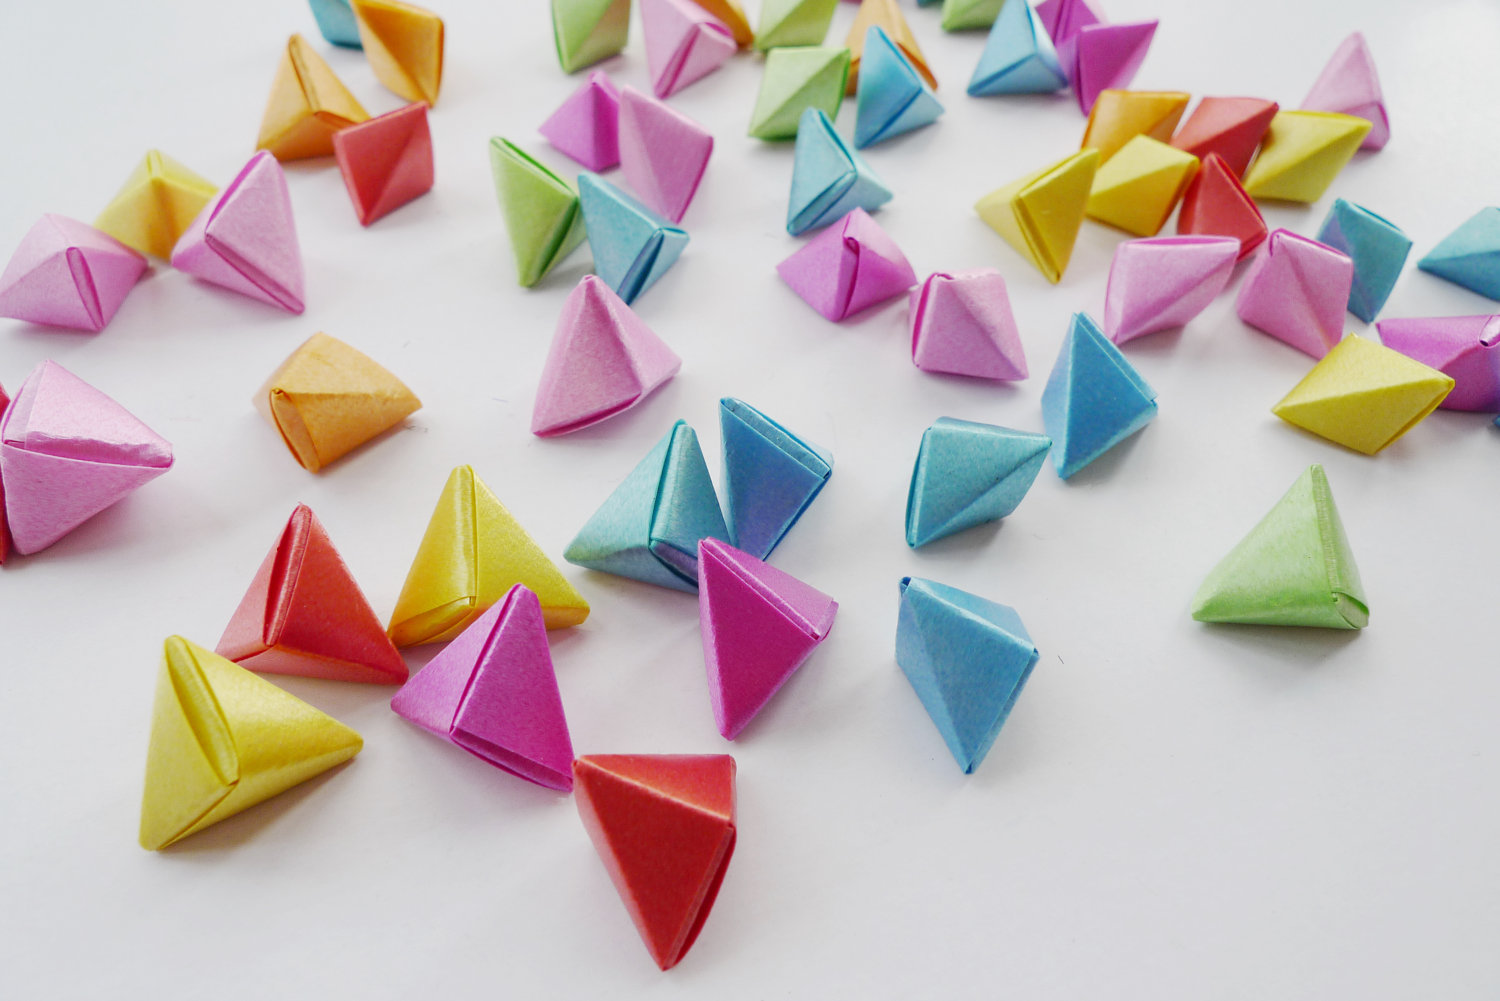 3d Origami Triangles :: 3d Puzzle Image - photo#38